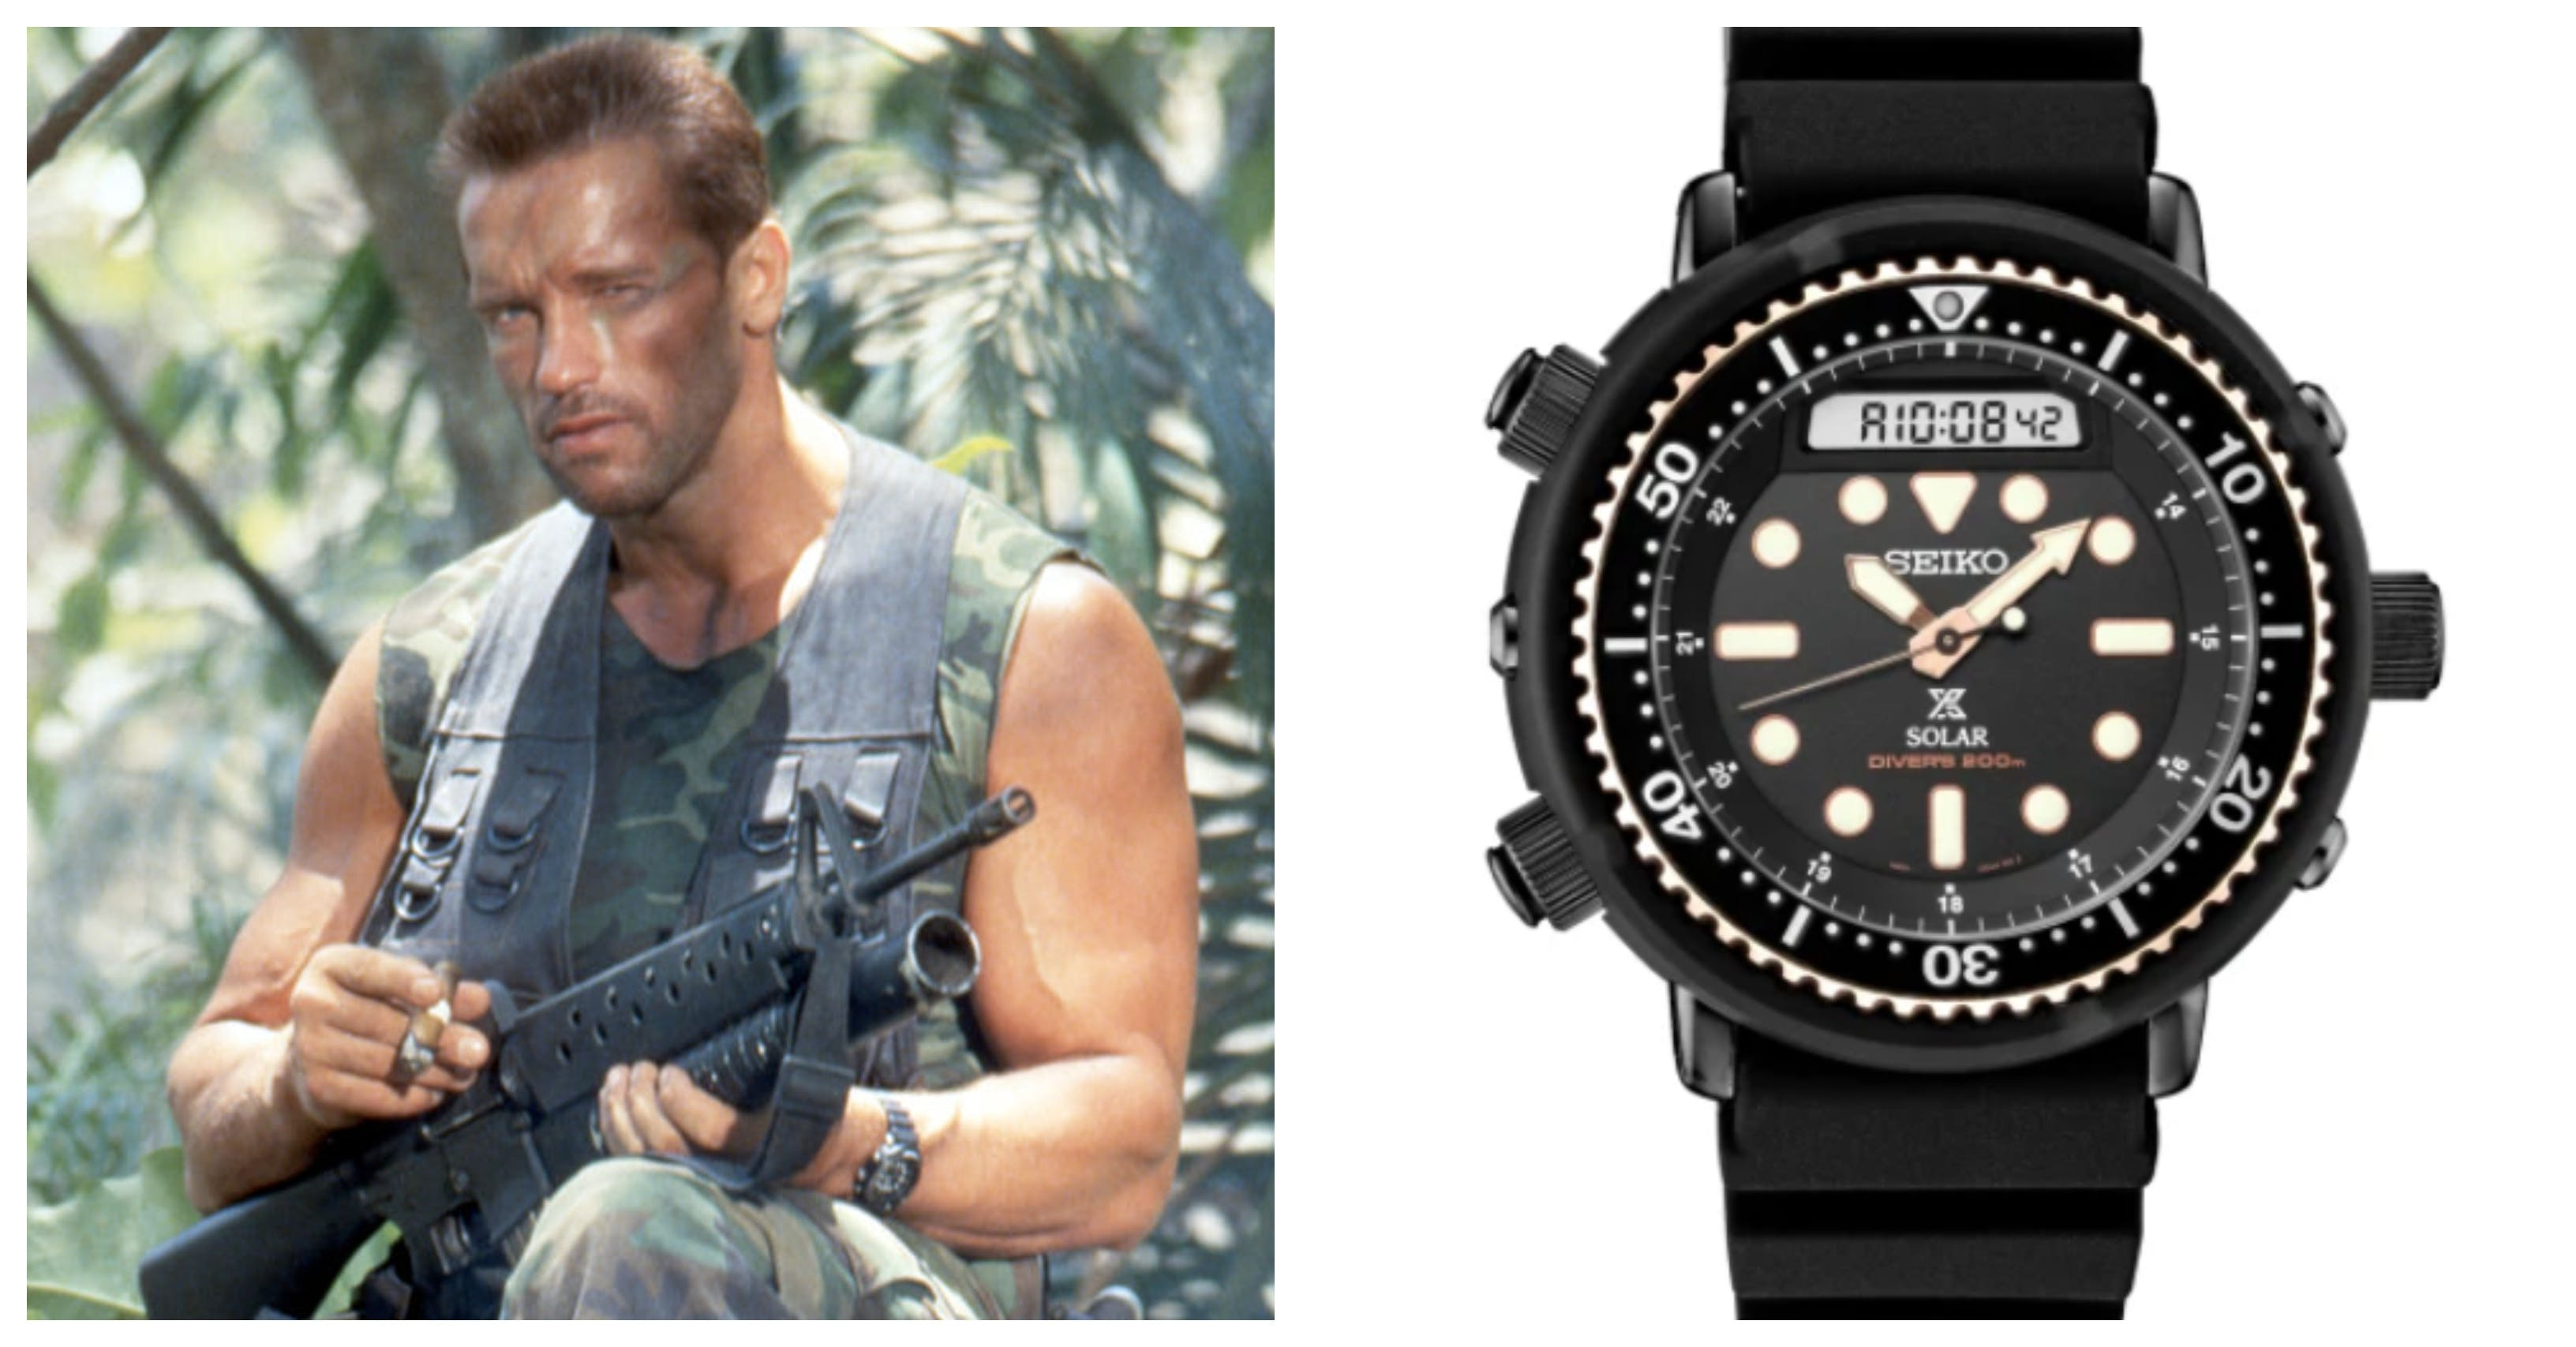 Seiko Arnie: A Review of Arnold Schwarzenegger's Pick